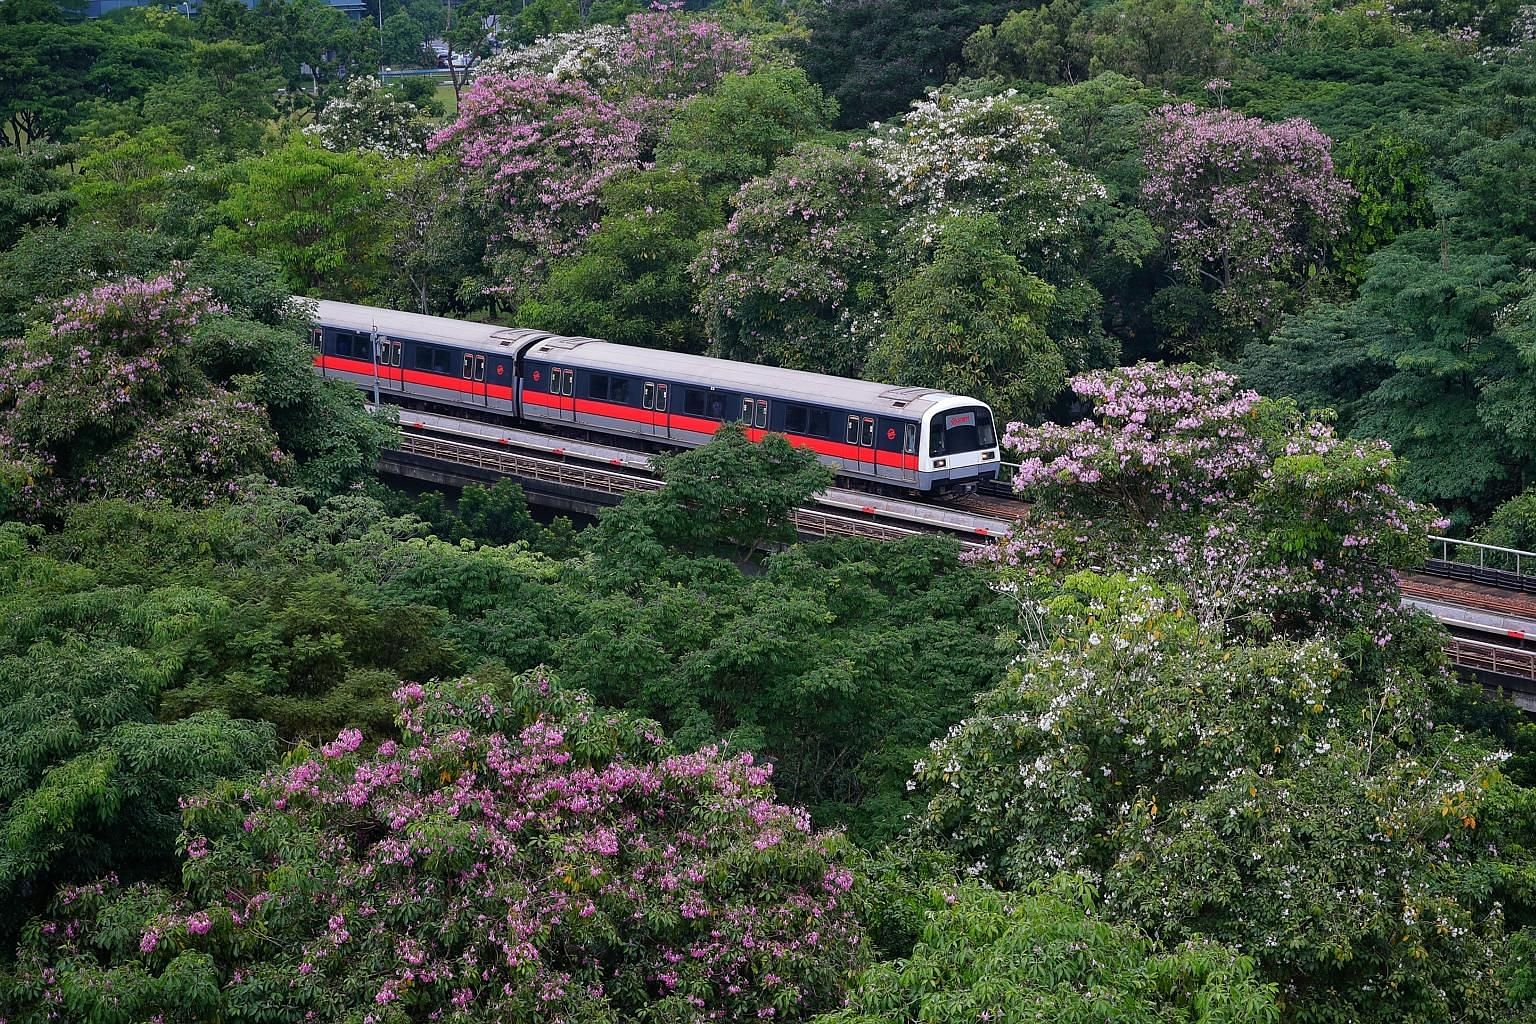 Singapore's own version of sakura was seen blooming yesterday as an SMRT train bound for Pasir Ris MRT station made its way past the canopies of Tabebuia rosea, also known as trumpet trees. The flowering trees resemble Japan's famed cherry blossoms,